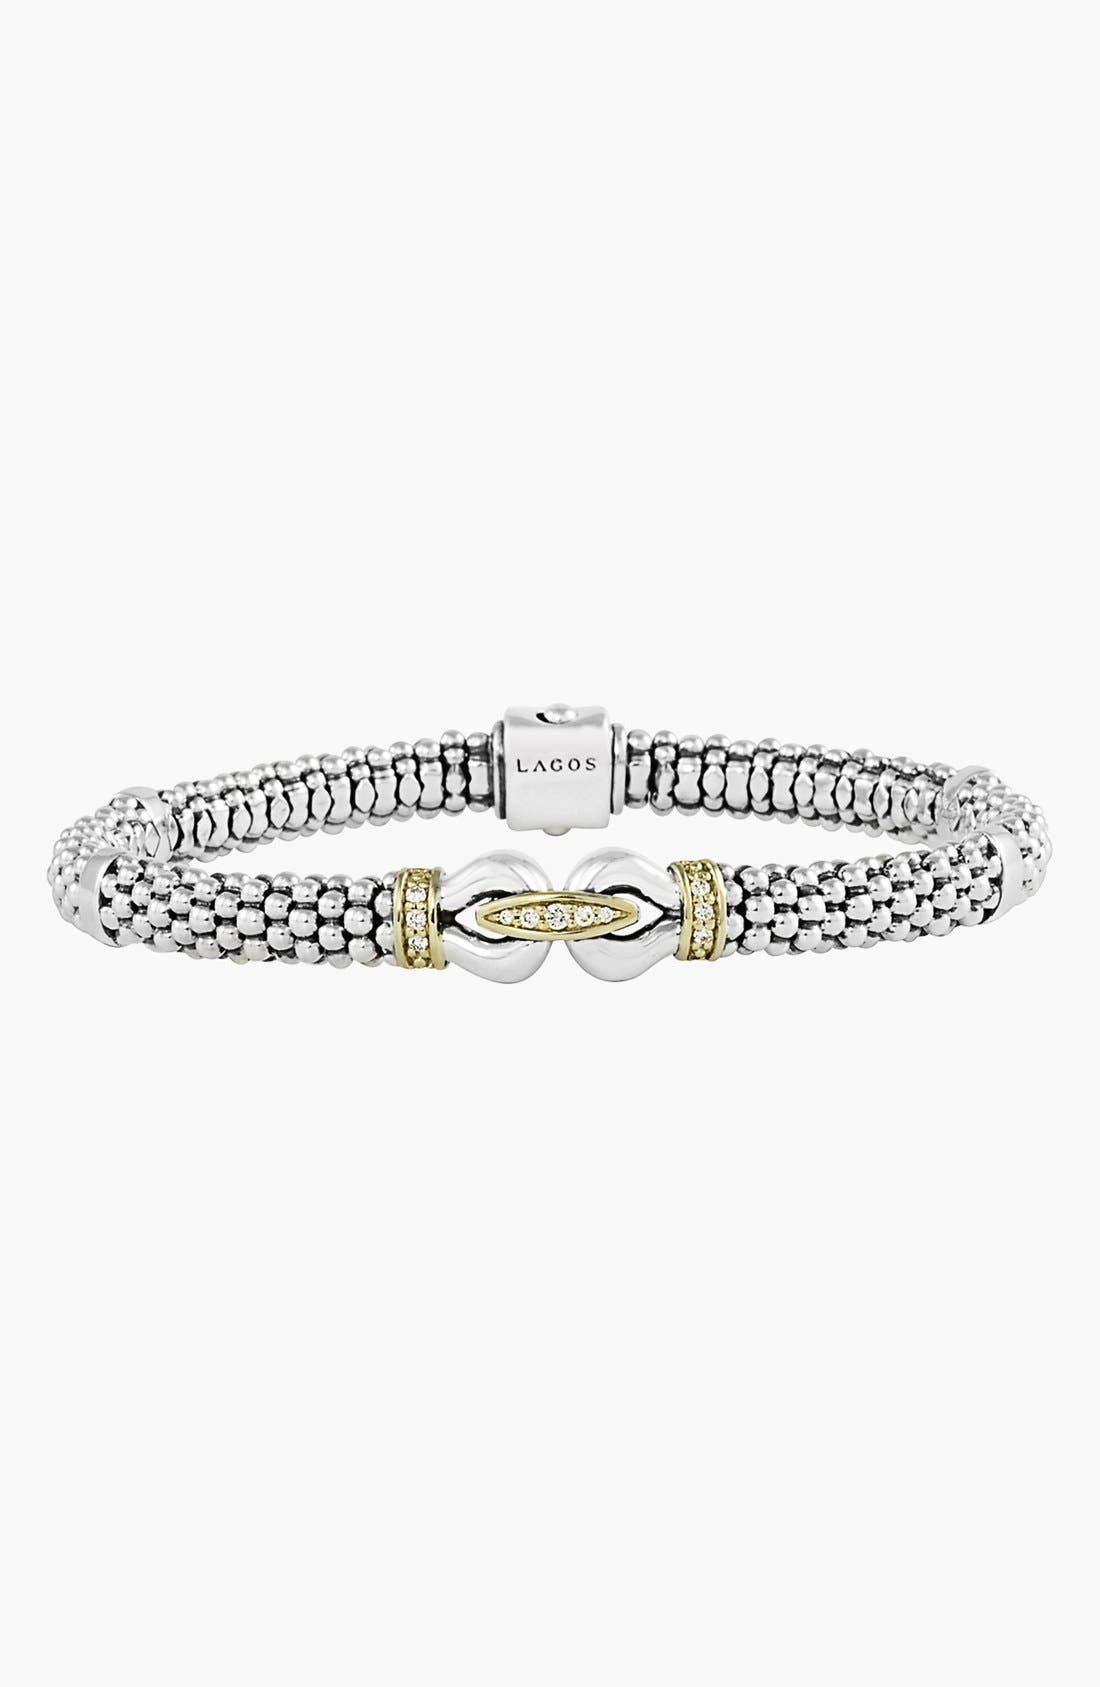 Alternate Image 1 Selected - LAGOS 'Derby' Diamond Buckle Two Tone Rope Bracelet